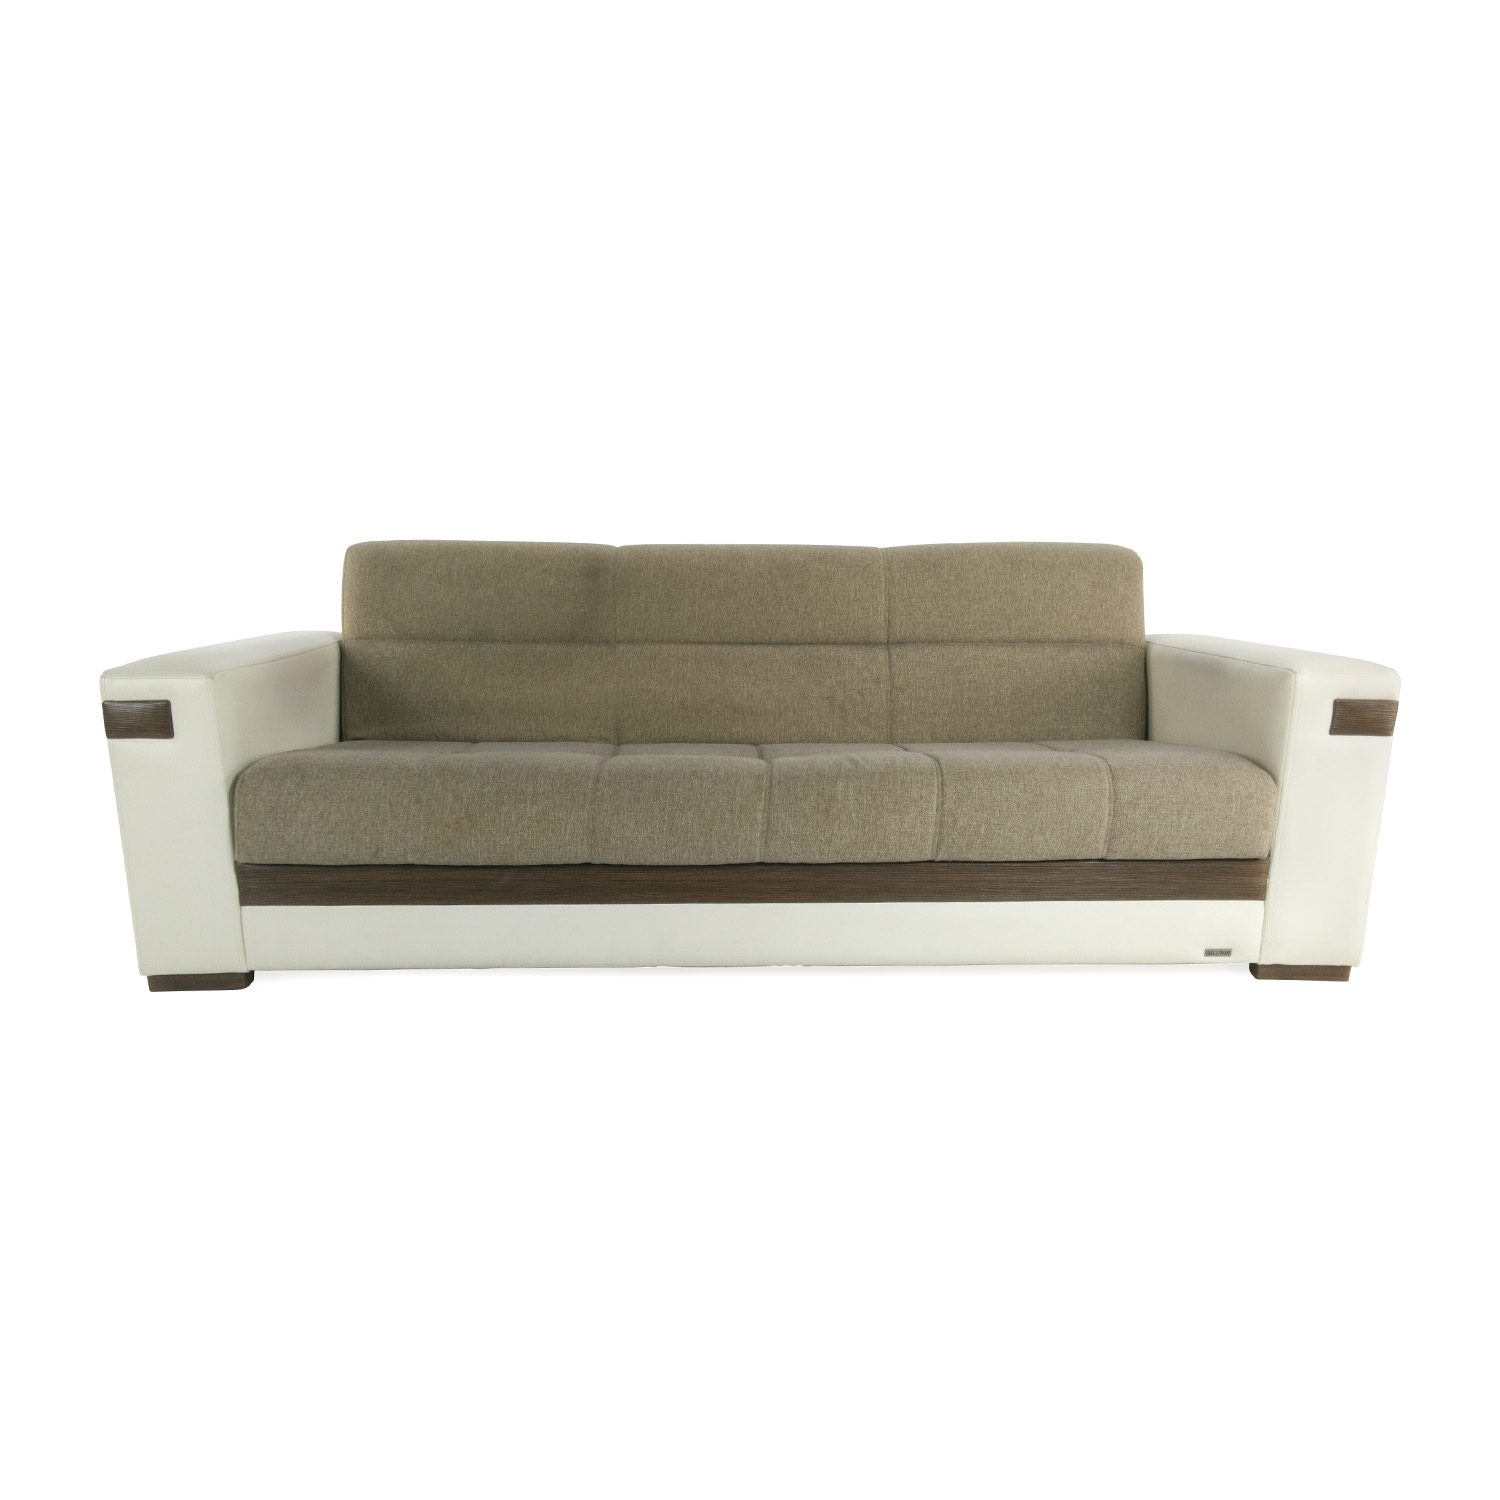 Bellona bellona contemporary sofa white tan